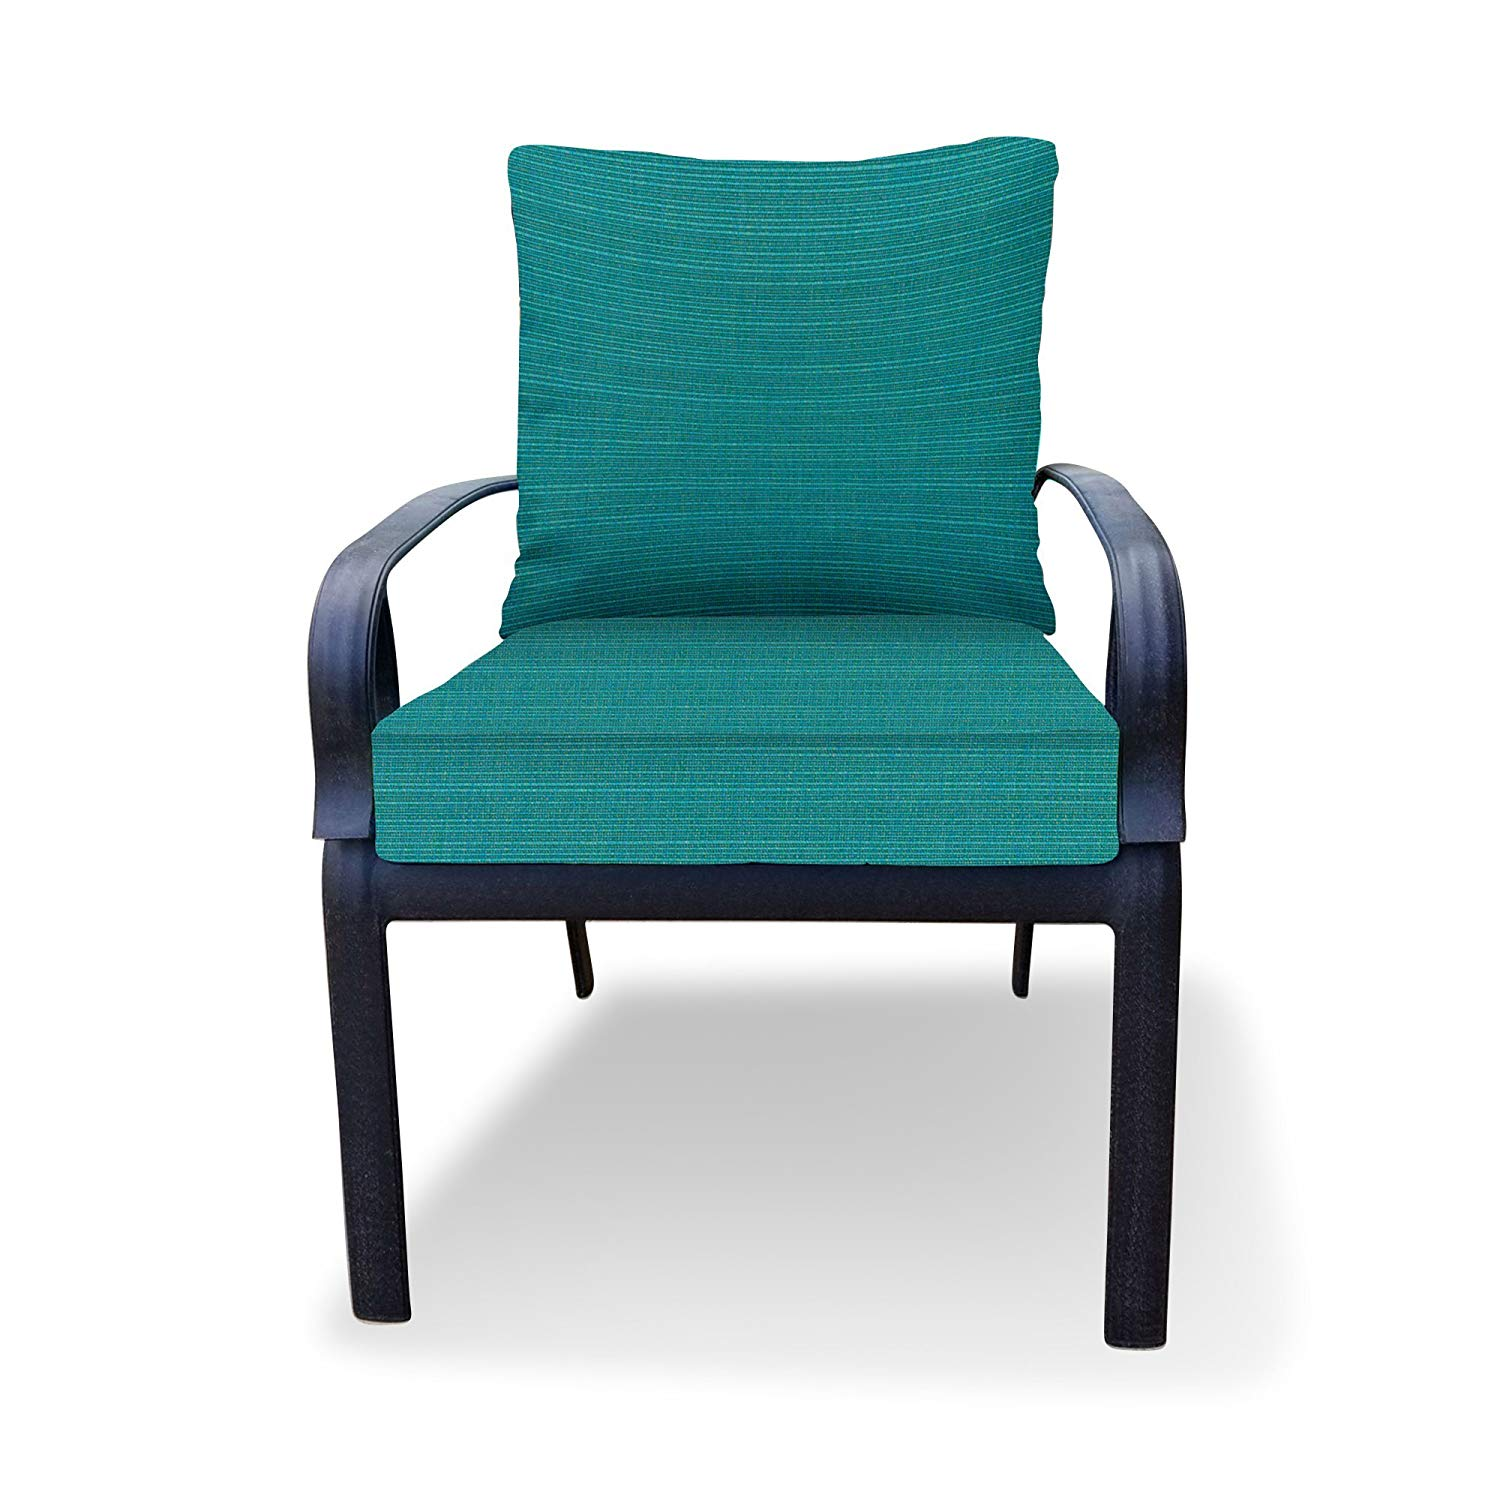 Thomas Collection Outdoor Cushion Set, Blue Outdoor Cushions for Chair, Chaise or Seat Only, Sunbrella Outdoor Cushions Waterproof, Handmade in US, 13152 - Furniture Not Included